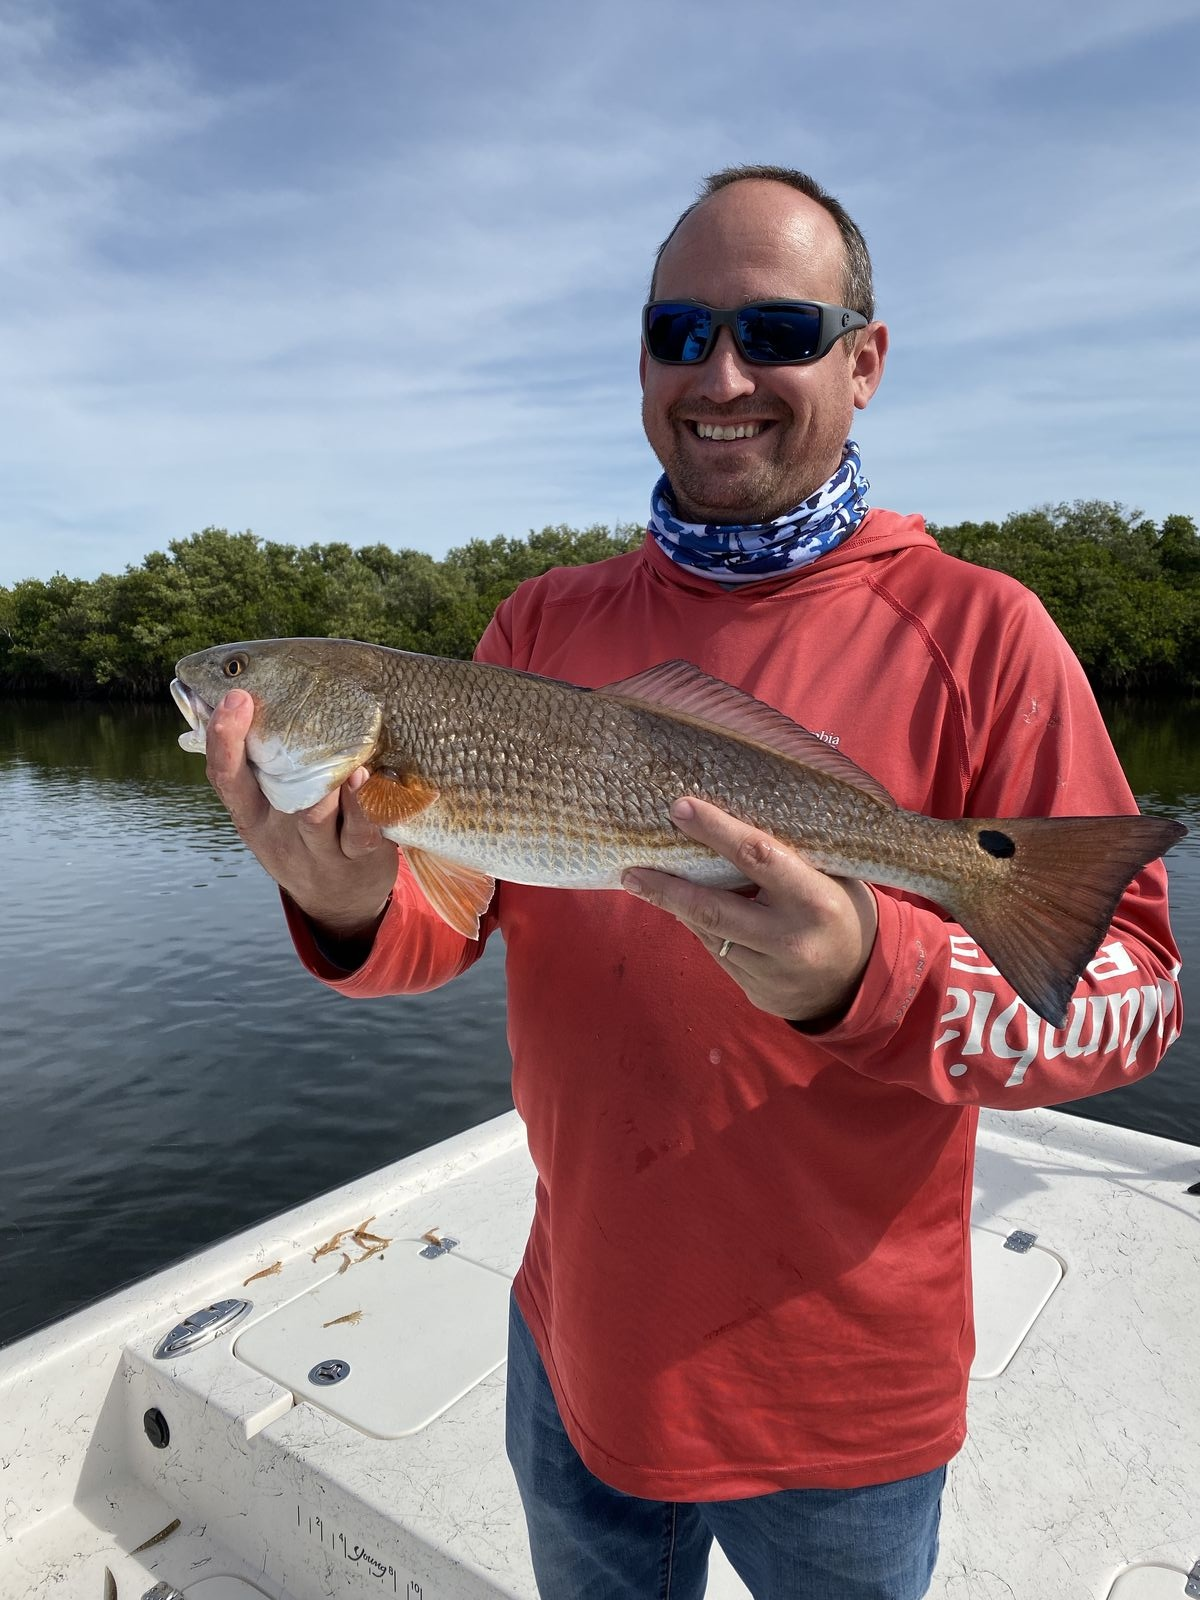 I know it's hard to believe but with air tempratures huvering in the mid to upper 70's fishing has been as hot as ever. It seems as if the fish are already in their early spring patterns. Redfish and trout have been inhaling everything from live bait to topwater lures. For the past couple of weeks my anglers have been landing double digit redfish dayin and dayout. The bait of choice has been a 1/4 ounce jig head with a glow in the dark Berkley Gulp shrimp tail. They say this stuff works better than live bait and Man Alive let me tell you, I am a firm believer this stuff cold outfish live bait this month 2:1.